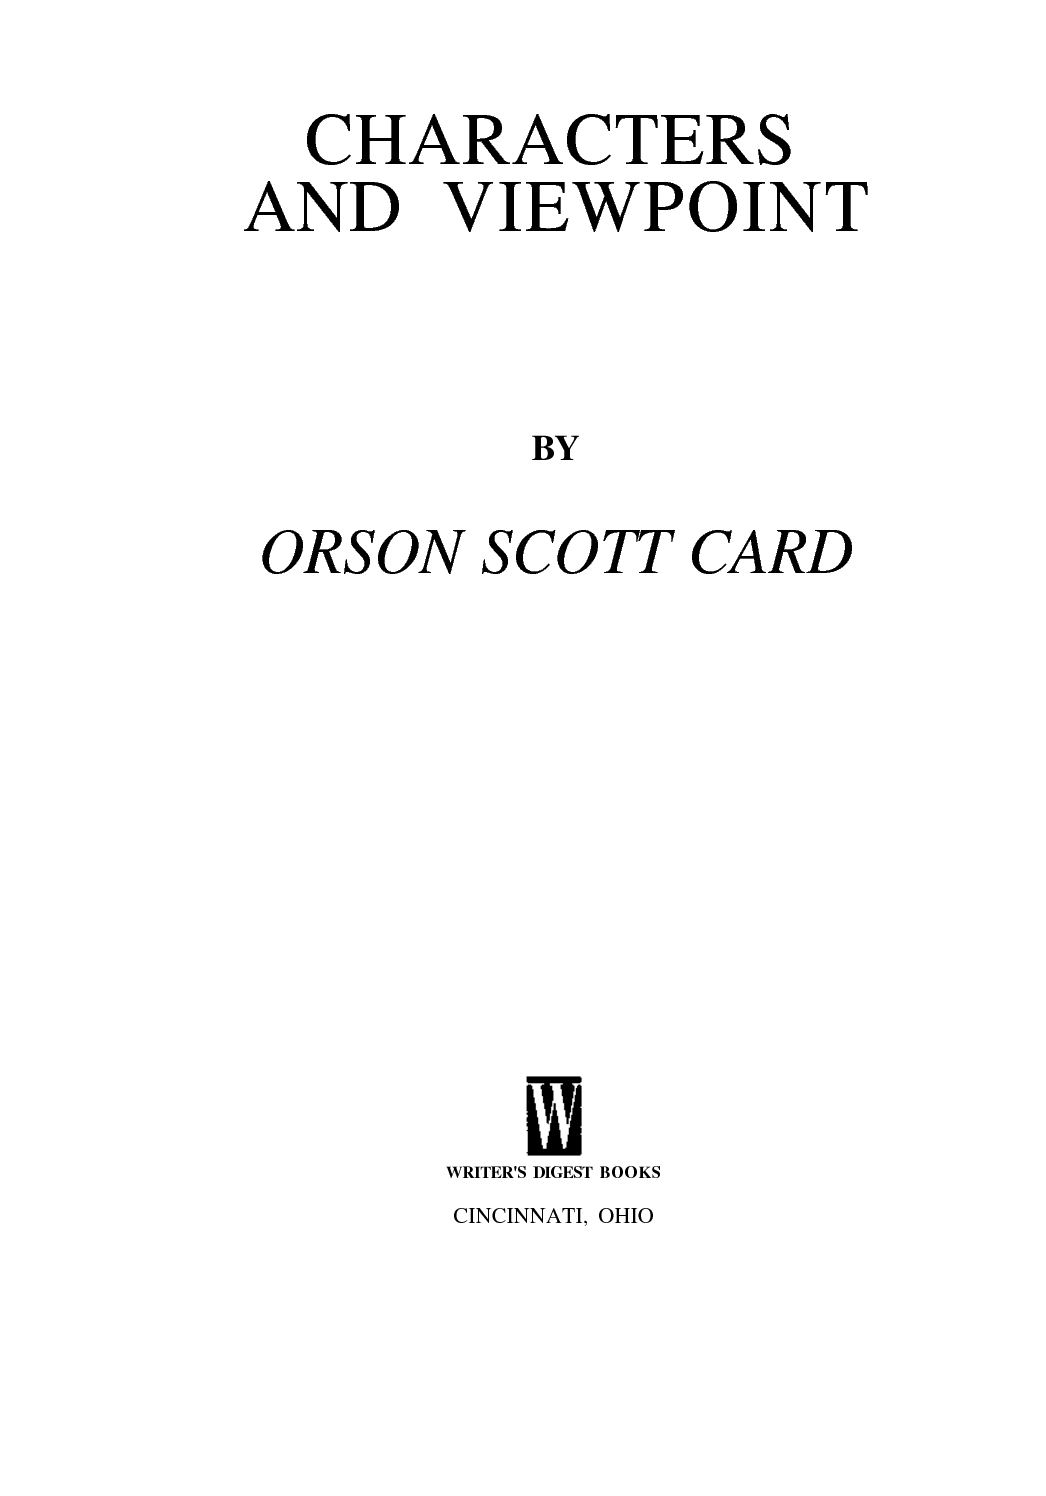 Calaméo - Card, Orson Scott - Characters & Viewpoint (Elements of